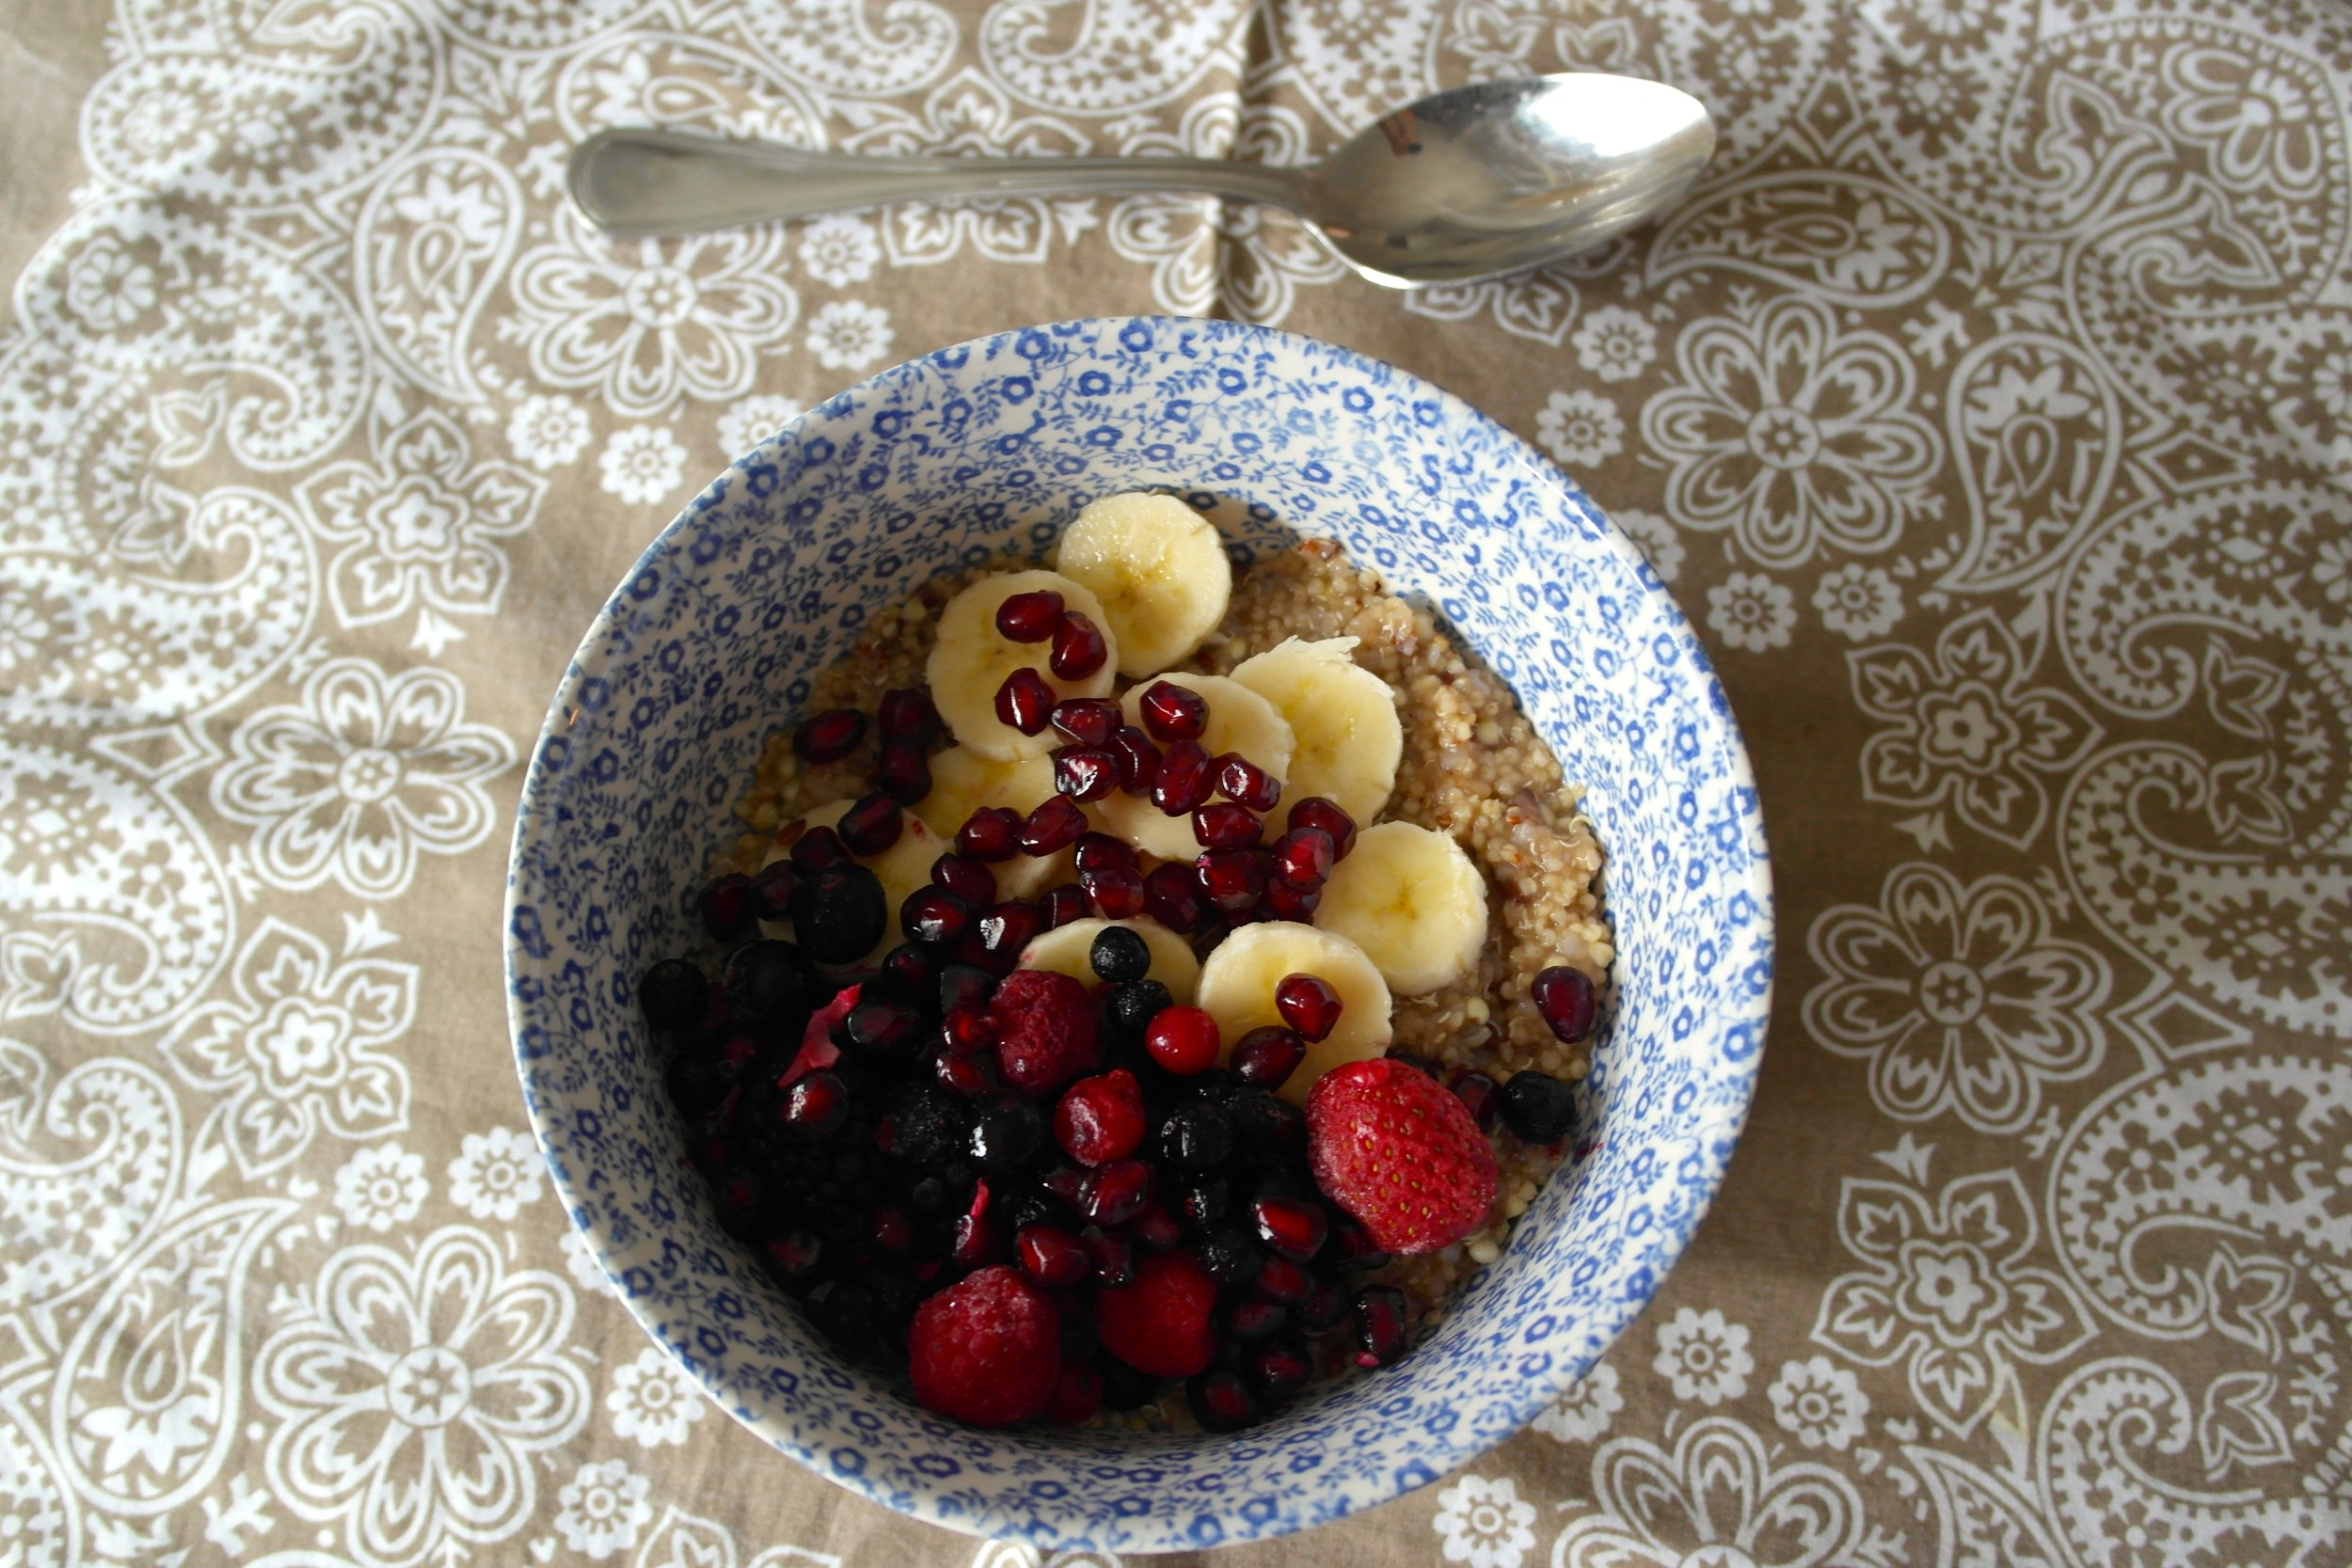 Topped with berries and banana